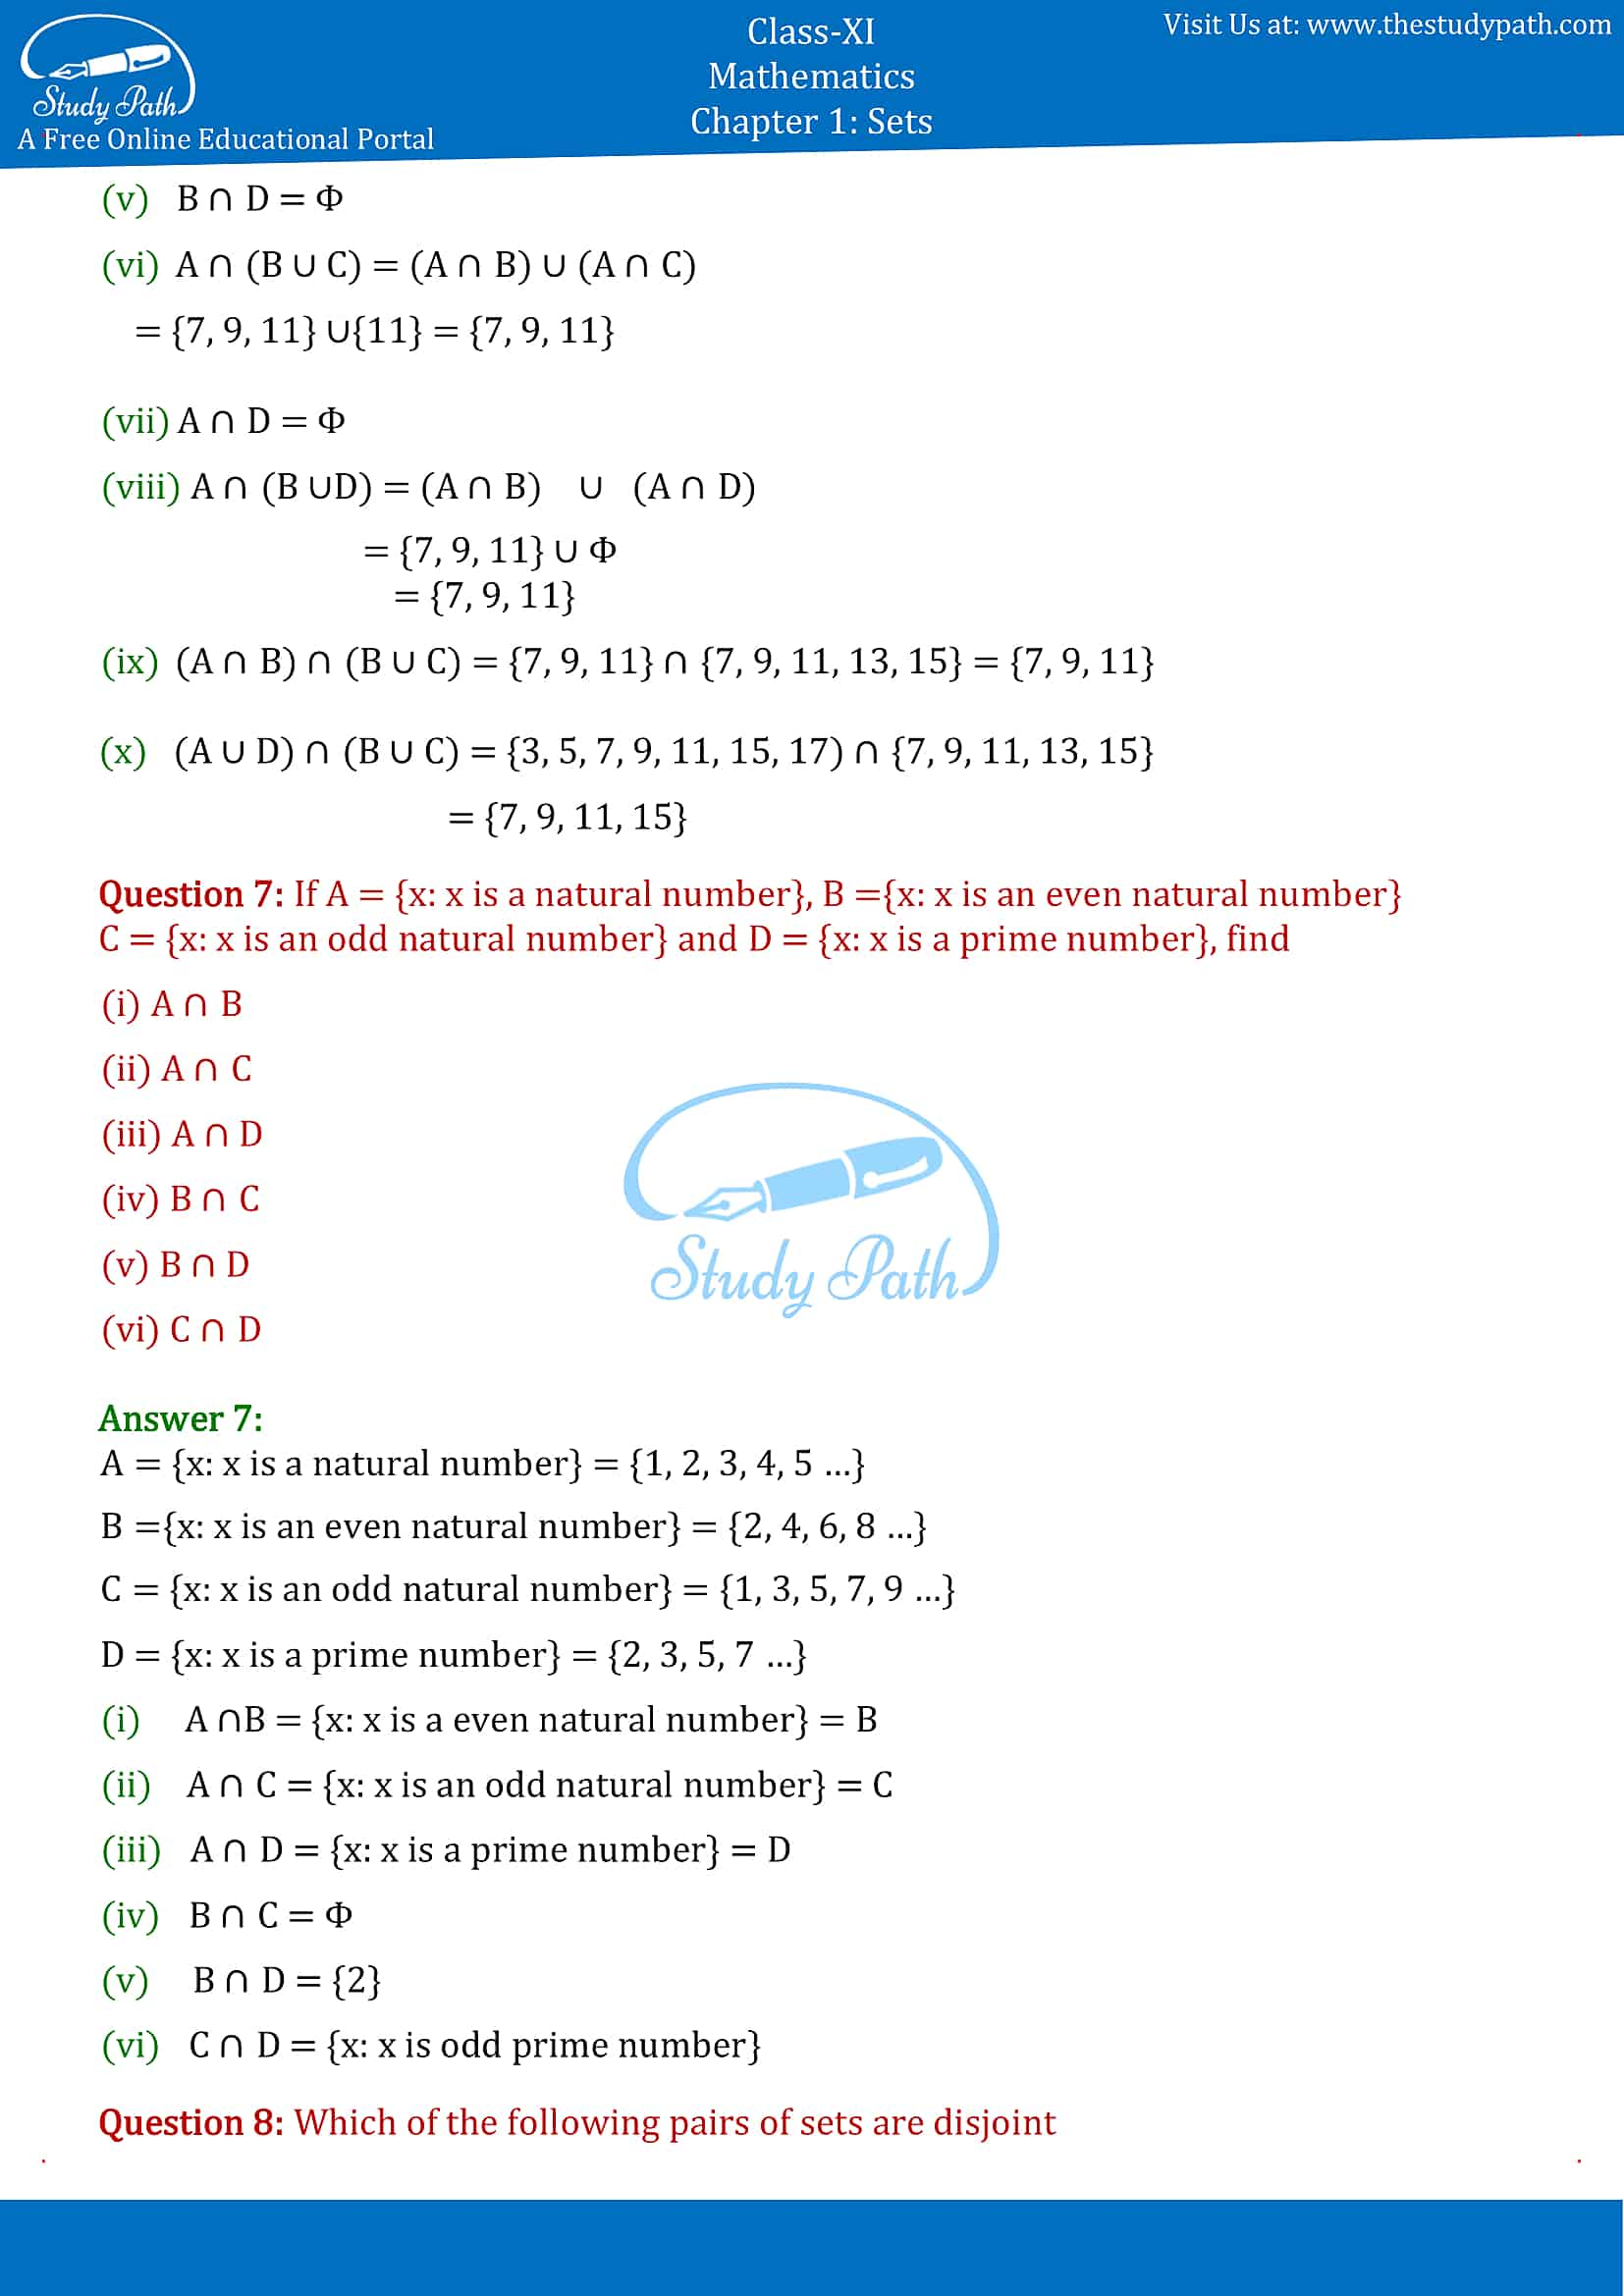 NCERT Solutions for Class 11 Maths chapter 1 sets Exercise 1.4